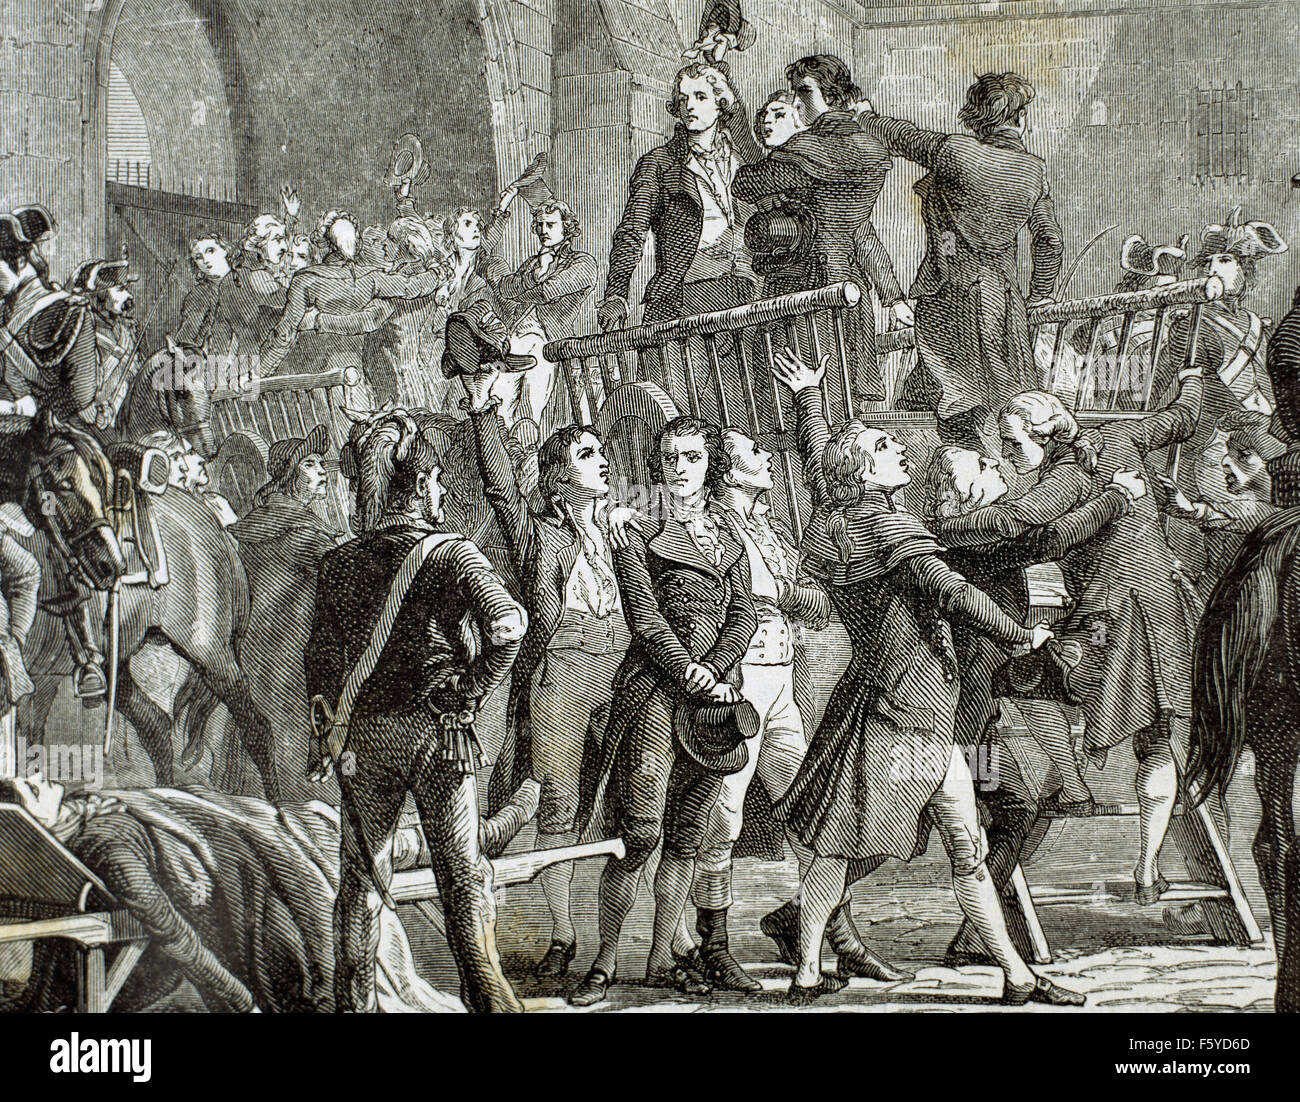 French Revolution. 1789. The Girondins out of prison to go to the gallows. Engraving, 19th century. - Stock Image